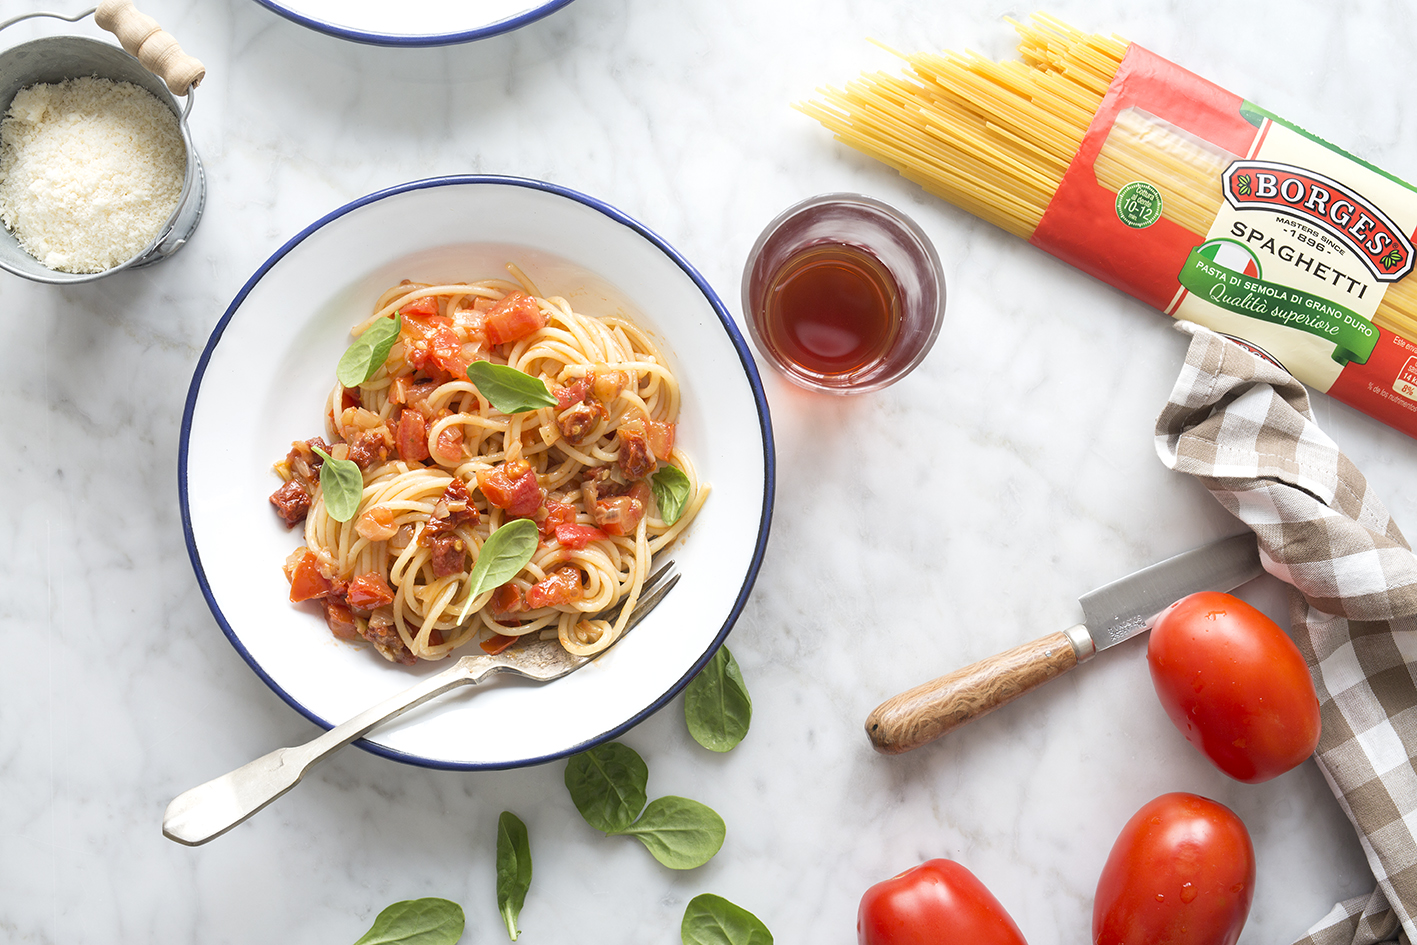 Spaghetti all'Arrabiata